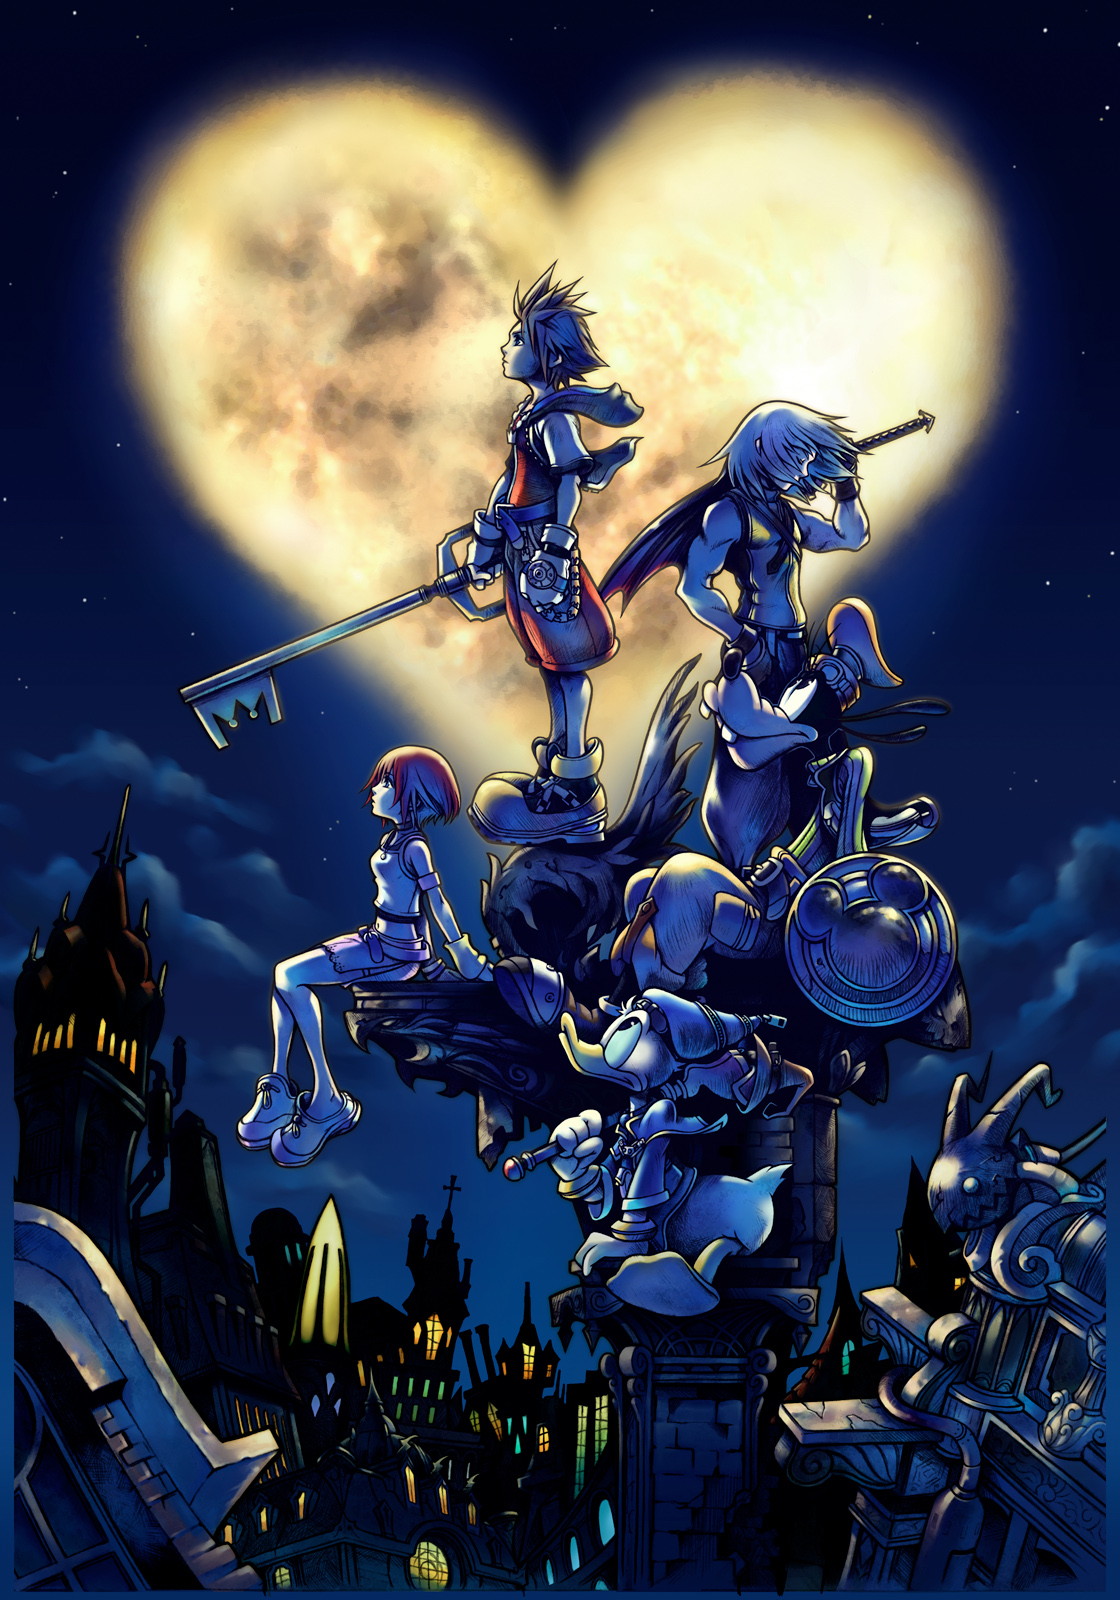 http://vignette1.wikia.nocookie.net/kingdomhearts/images/1/1b/Promotional_Artwork_KH.png/revision/latest?cb=20121116131852